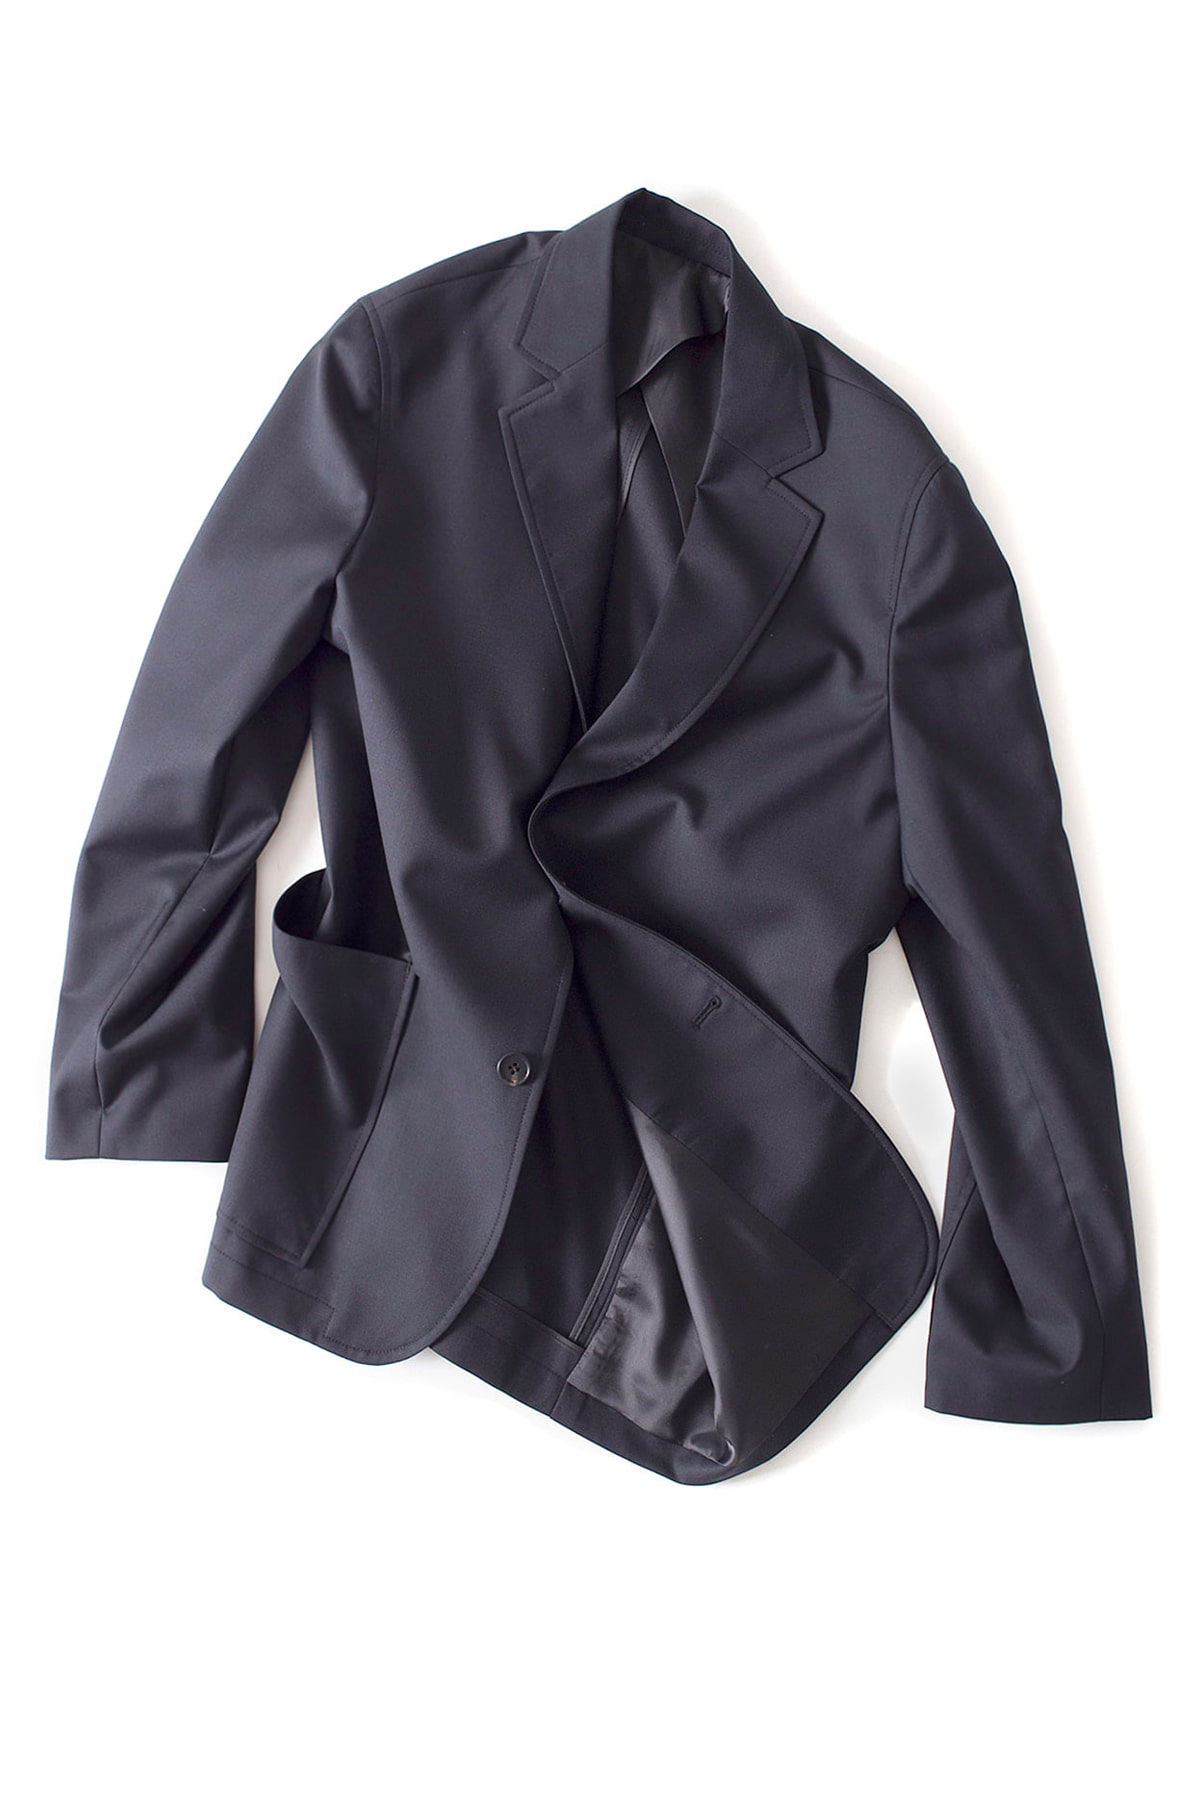 BIRTHDAYSUIT : Daily Suit Jacket (Dark Navy)